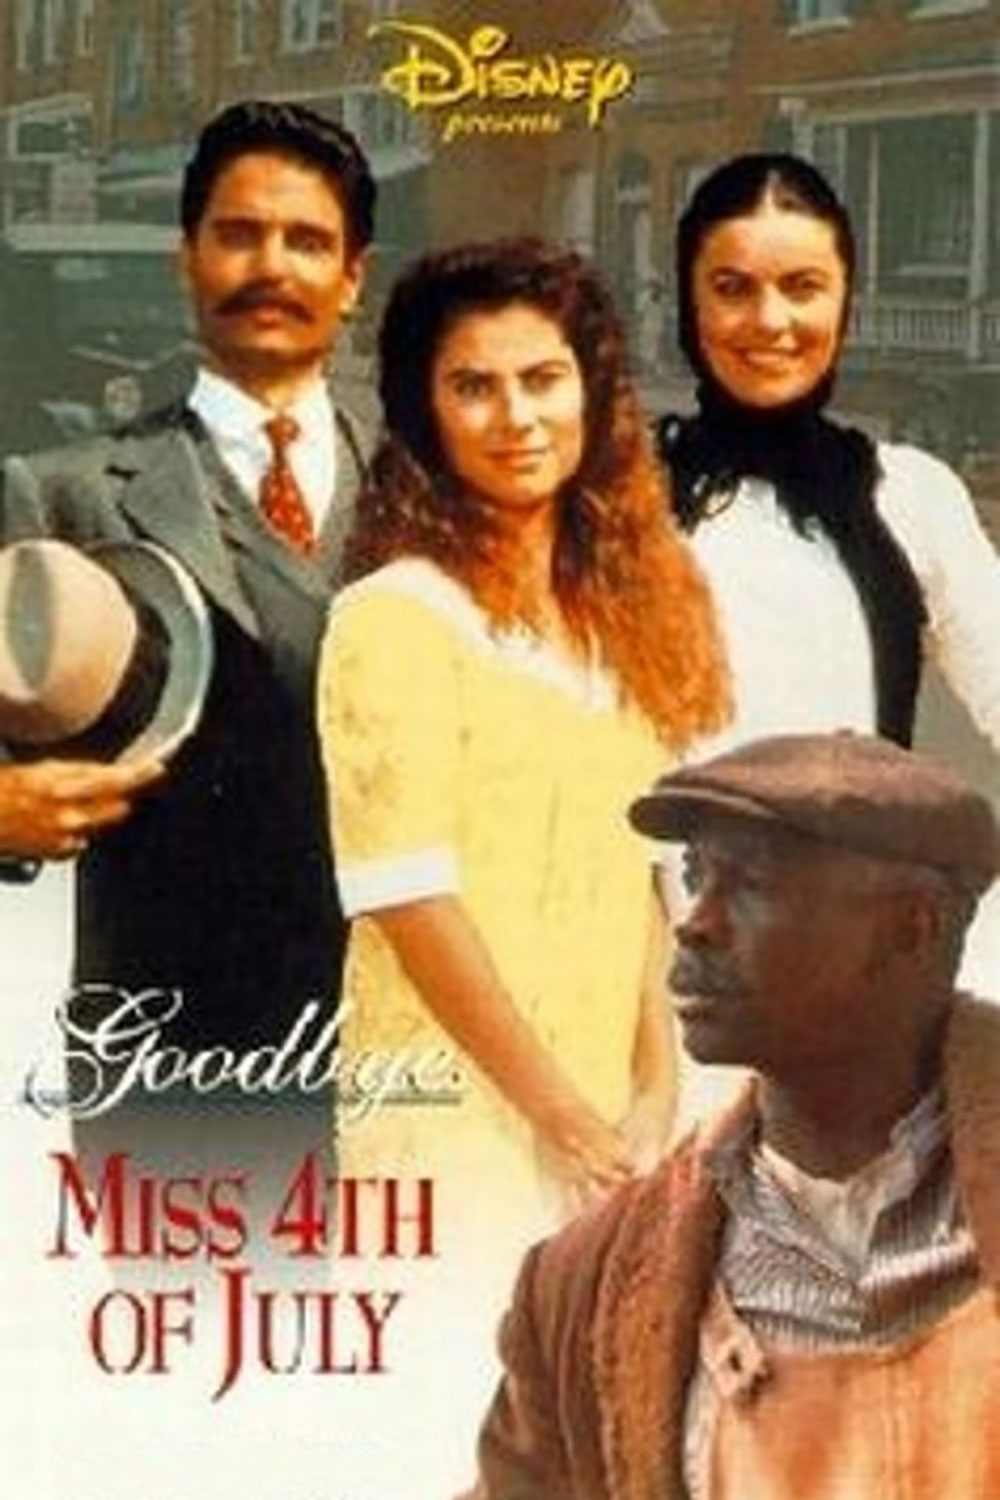 Affiche Poster miss liberte goodbye Miss 4th july disney channel